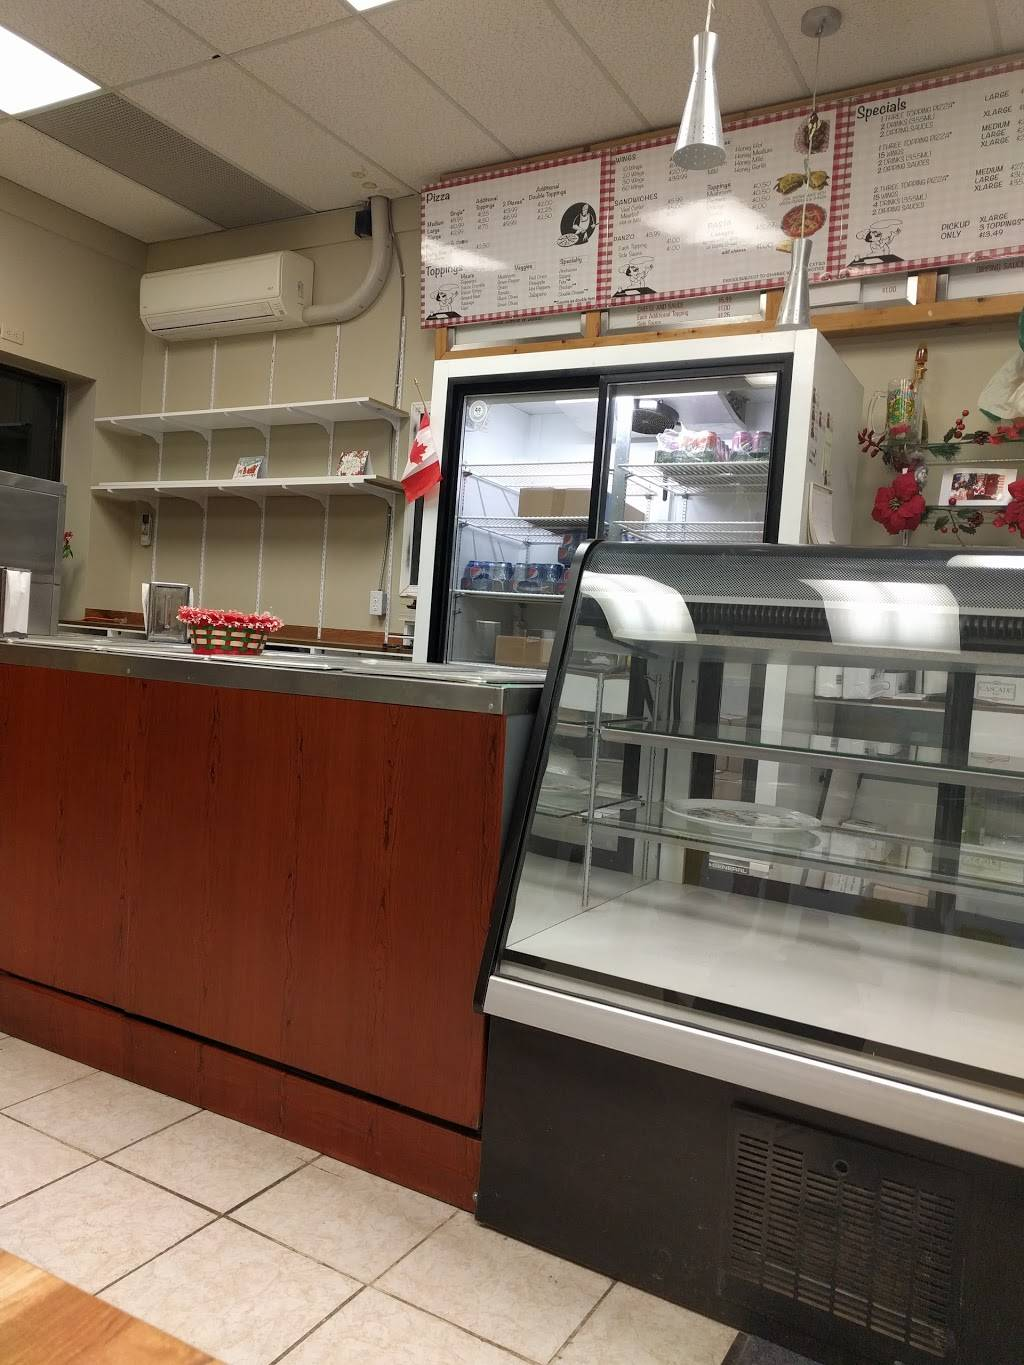 Bernies Pizza | meal takeaway | 52 Queen St #3, Gilford, ON L0L 1R0, Canada | 7054582001 OR +1 705-458-2001